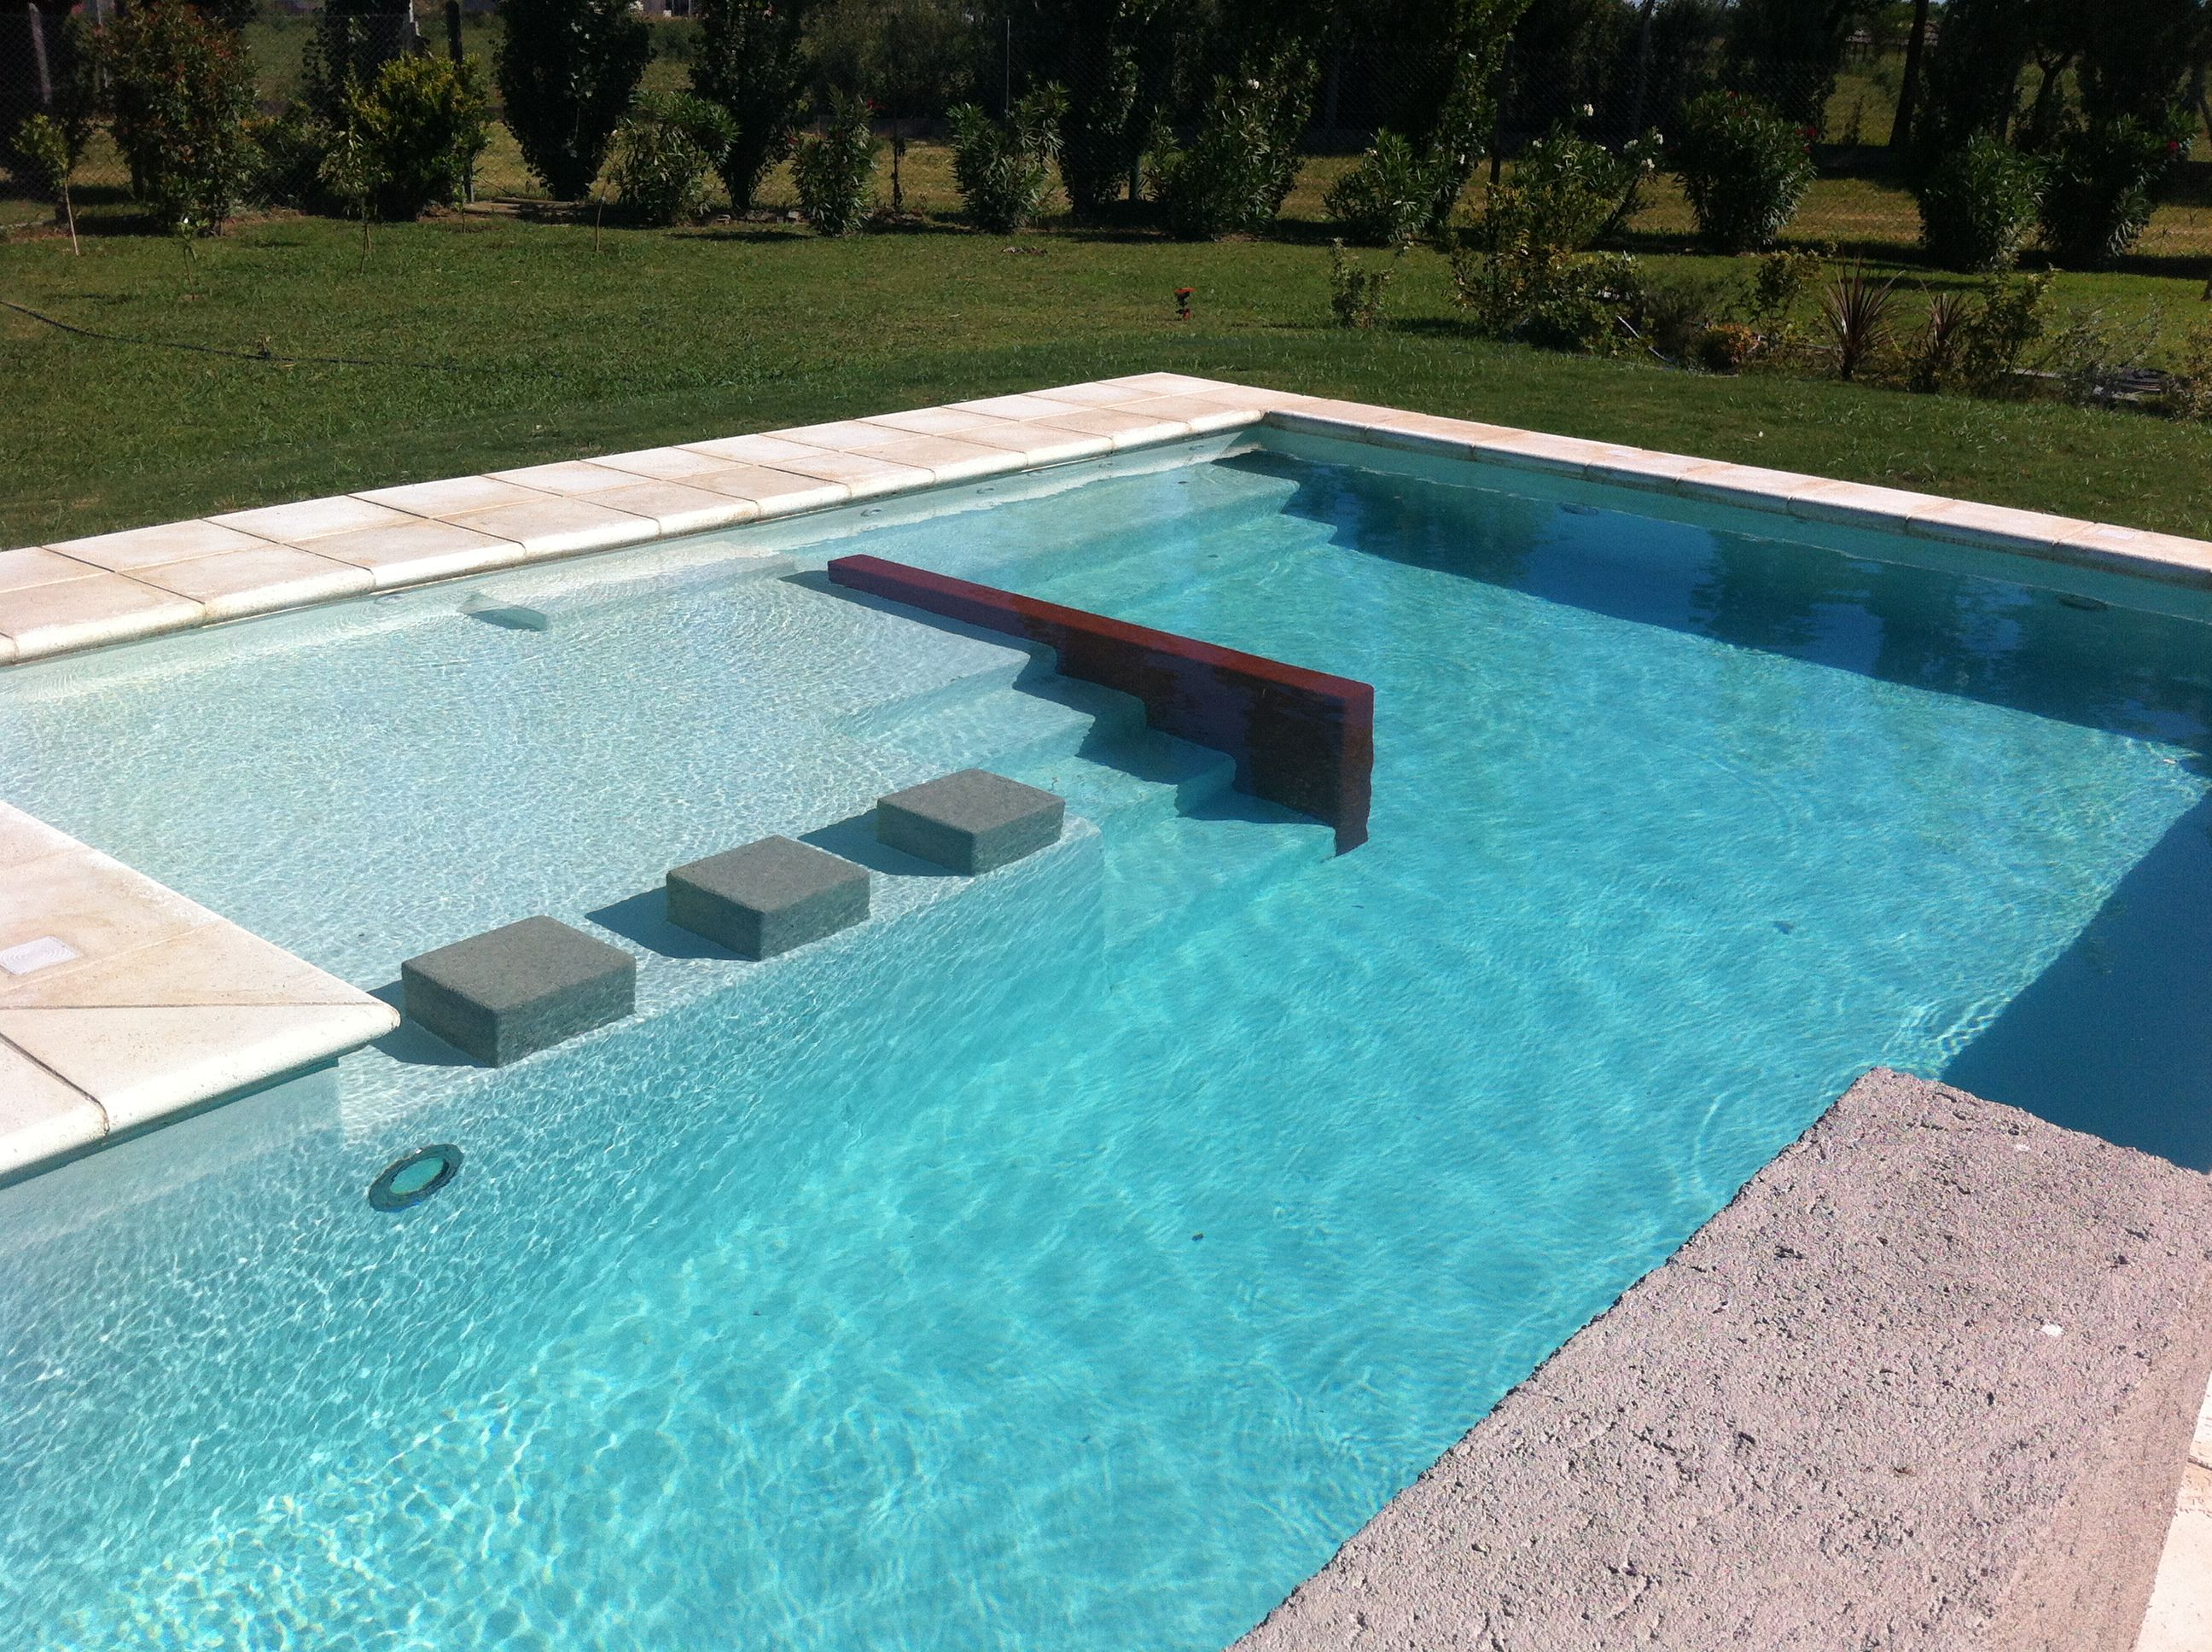 piscinas swimmingpool wellnes arquitectura dise o